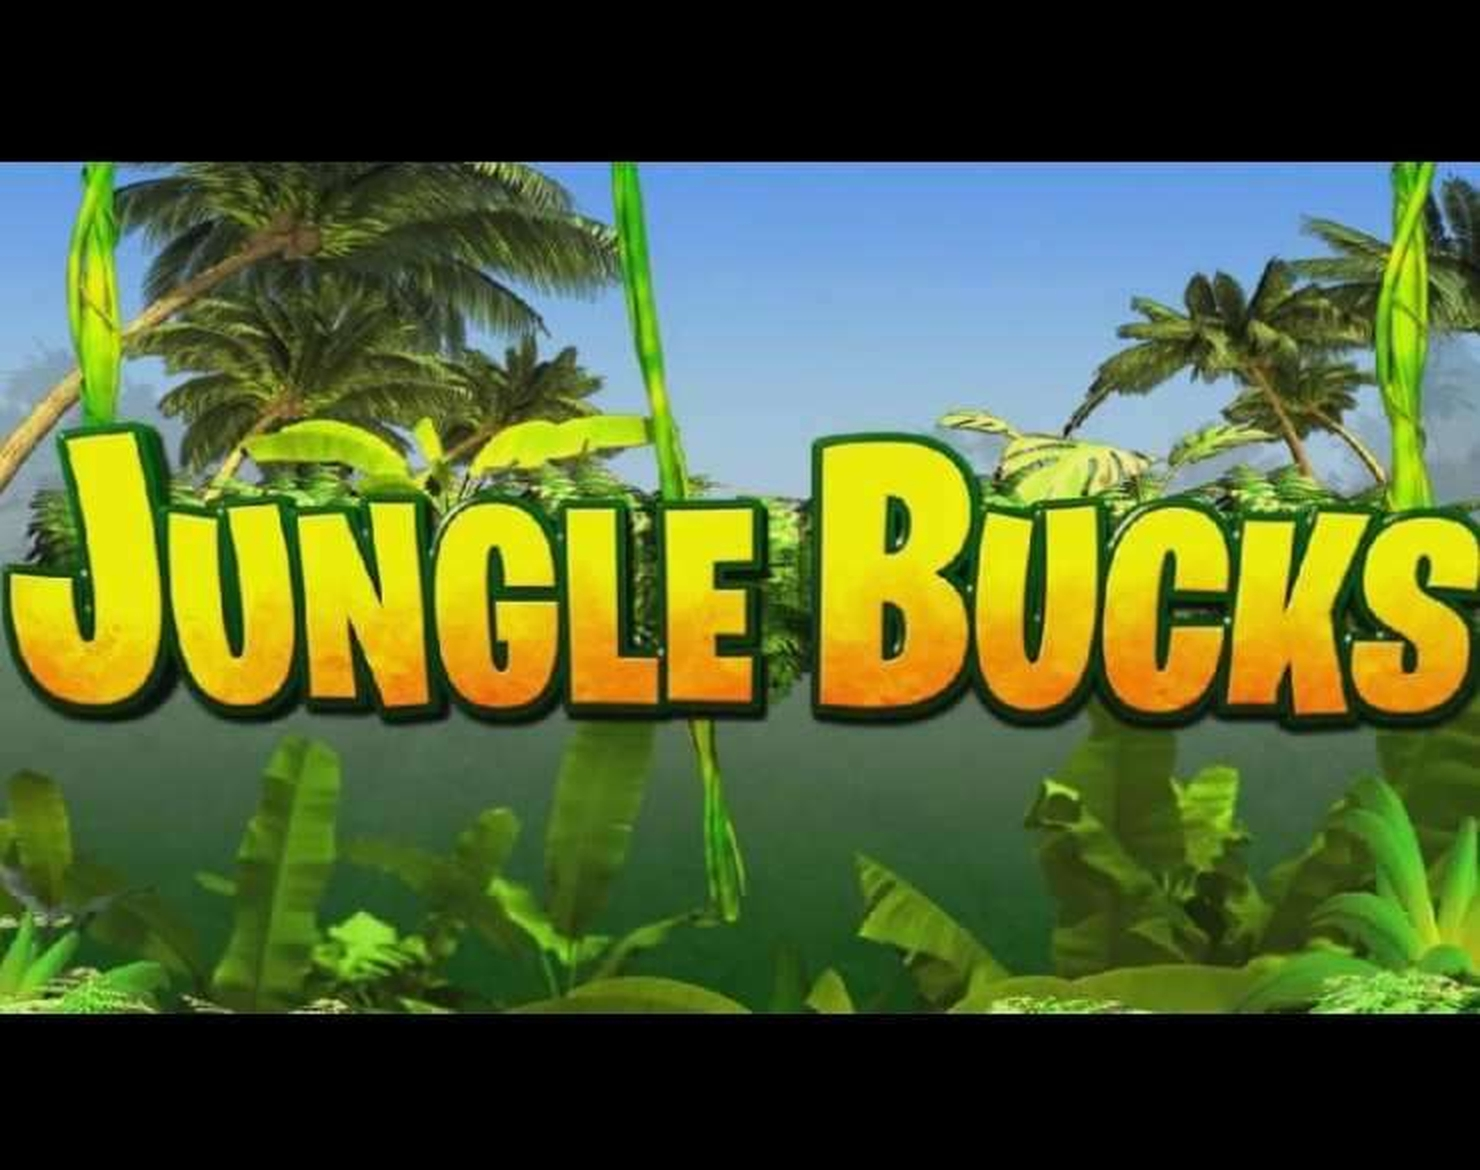 The Jungle Bucks Online Slot Demo Game by OpenBet